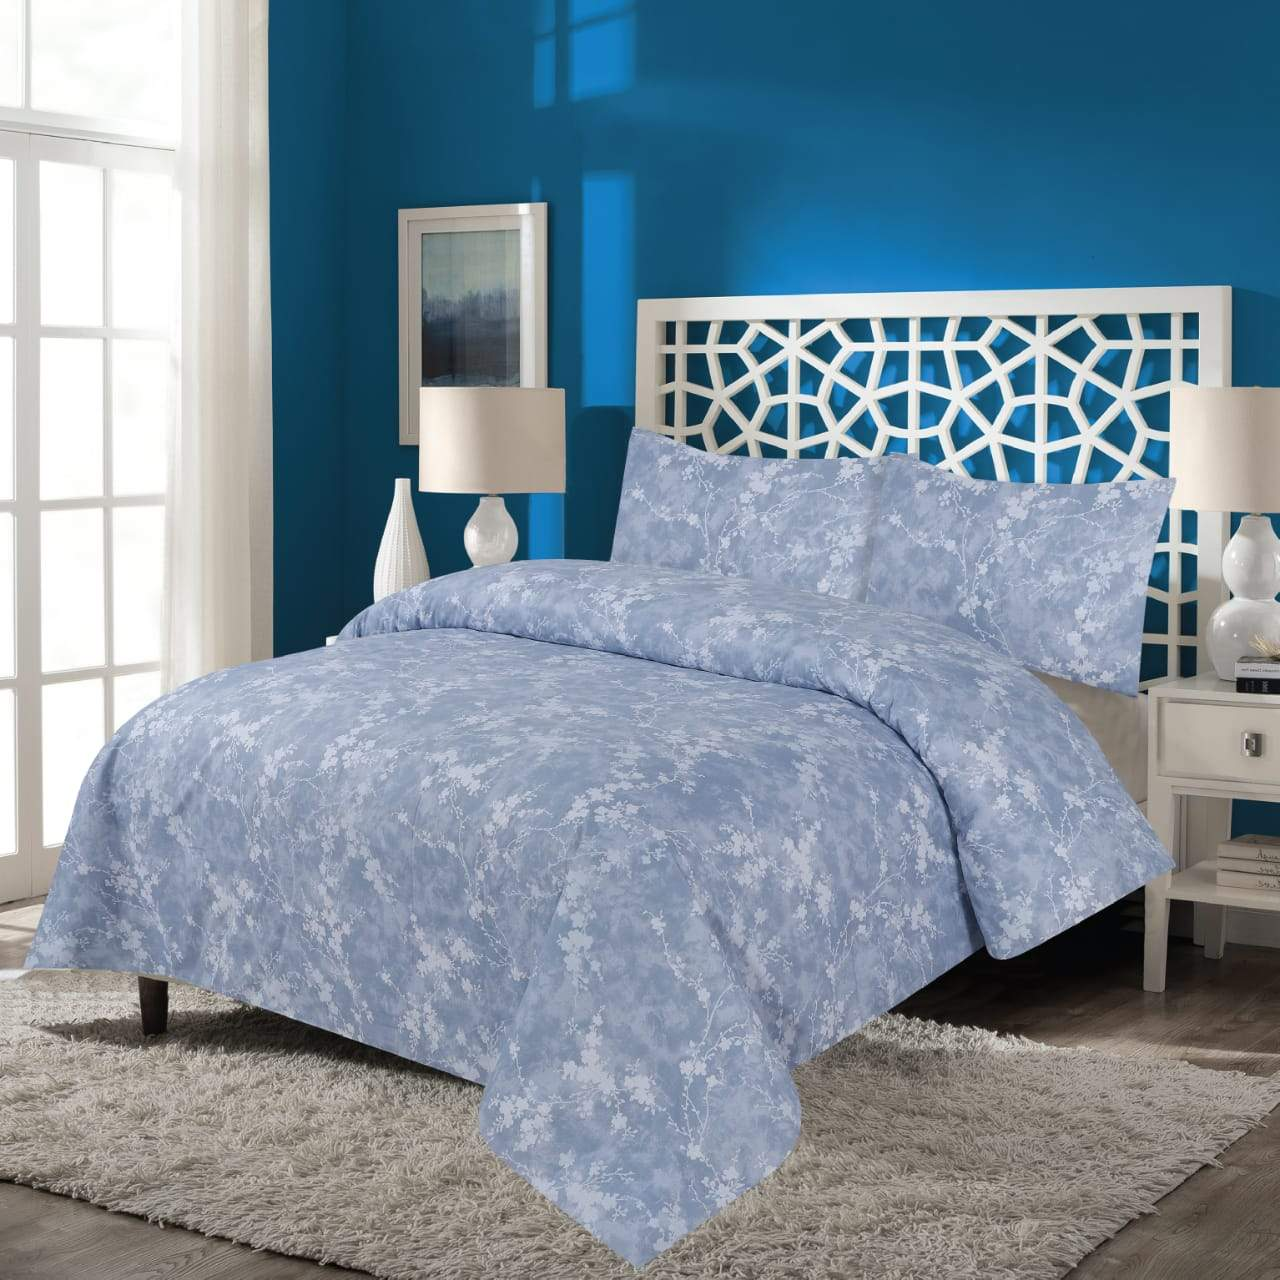 Grace D208-Cotton PC King Size Bedsheet with 2 Pillow Covers.